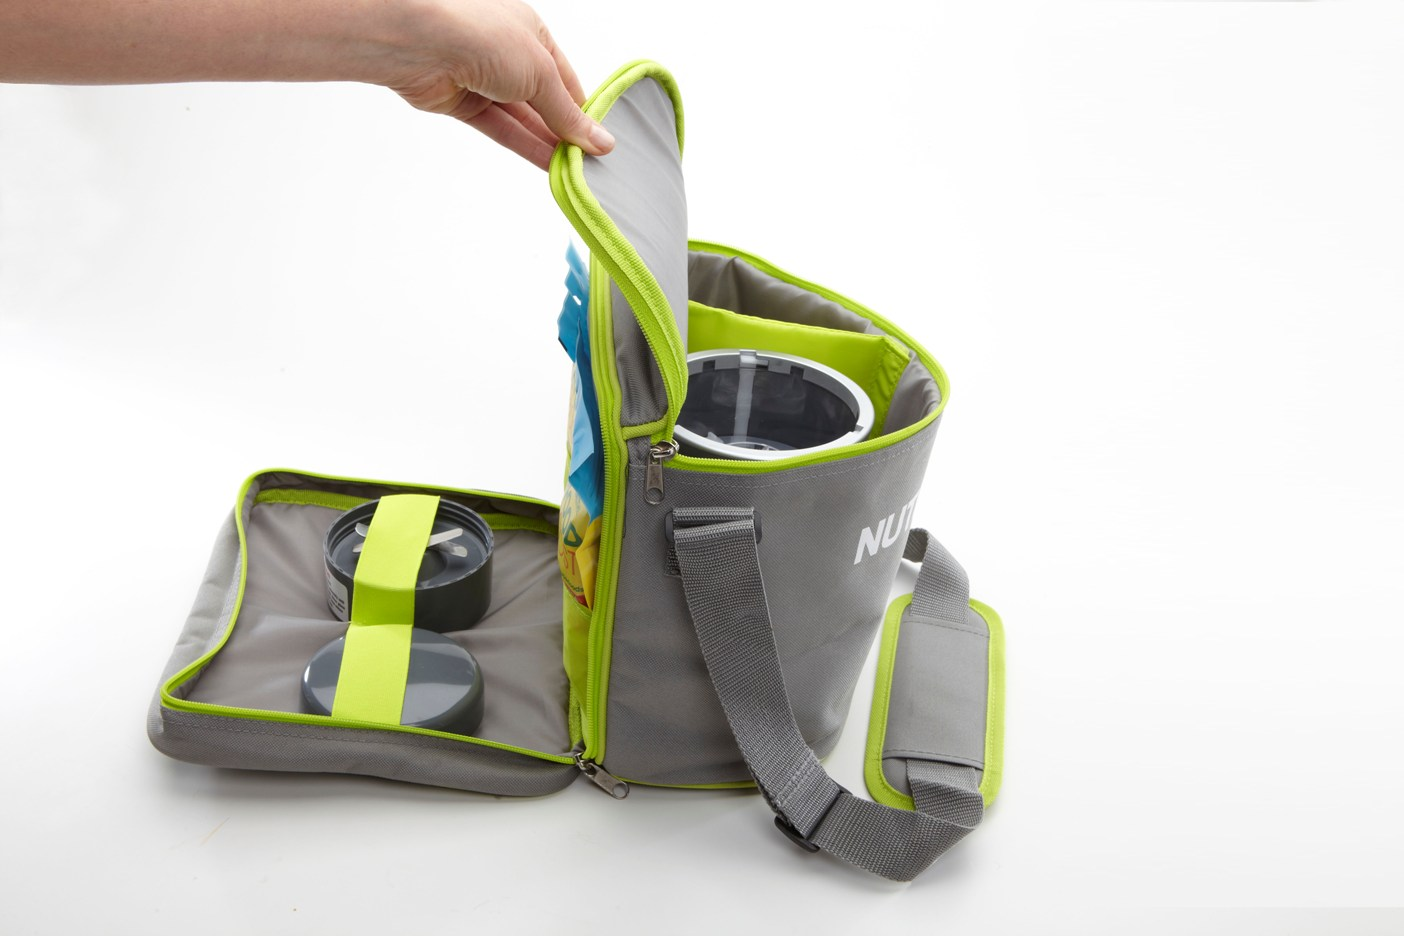 Stash your Nutribullet in this handy case and keep it safe!